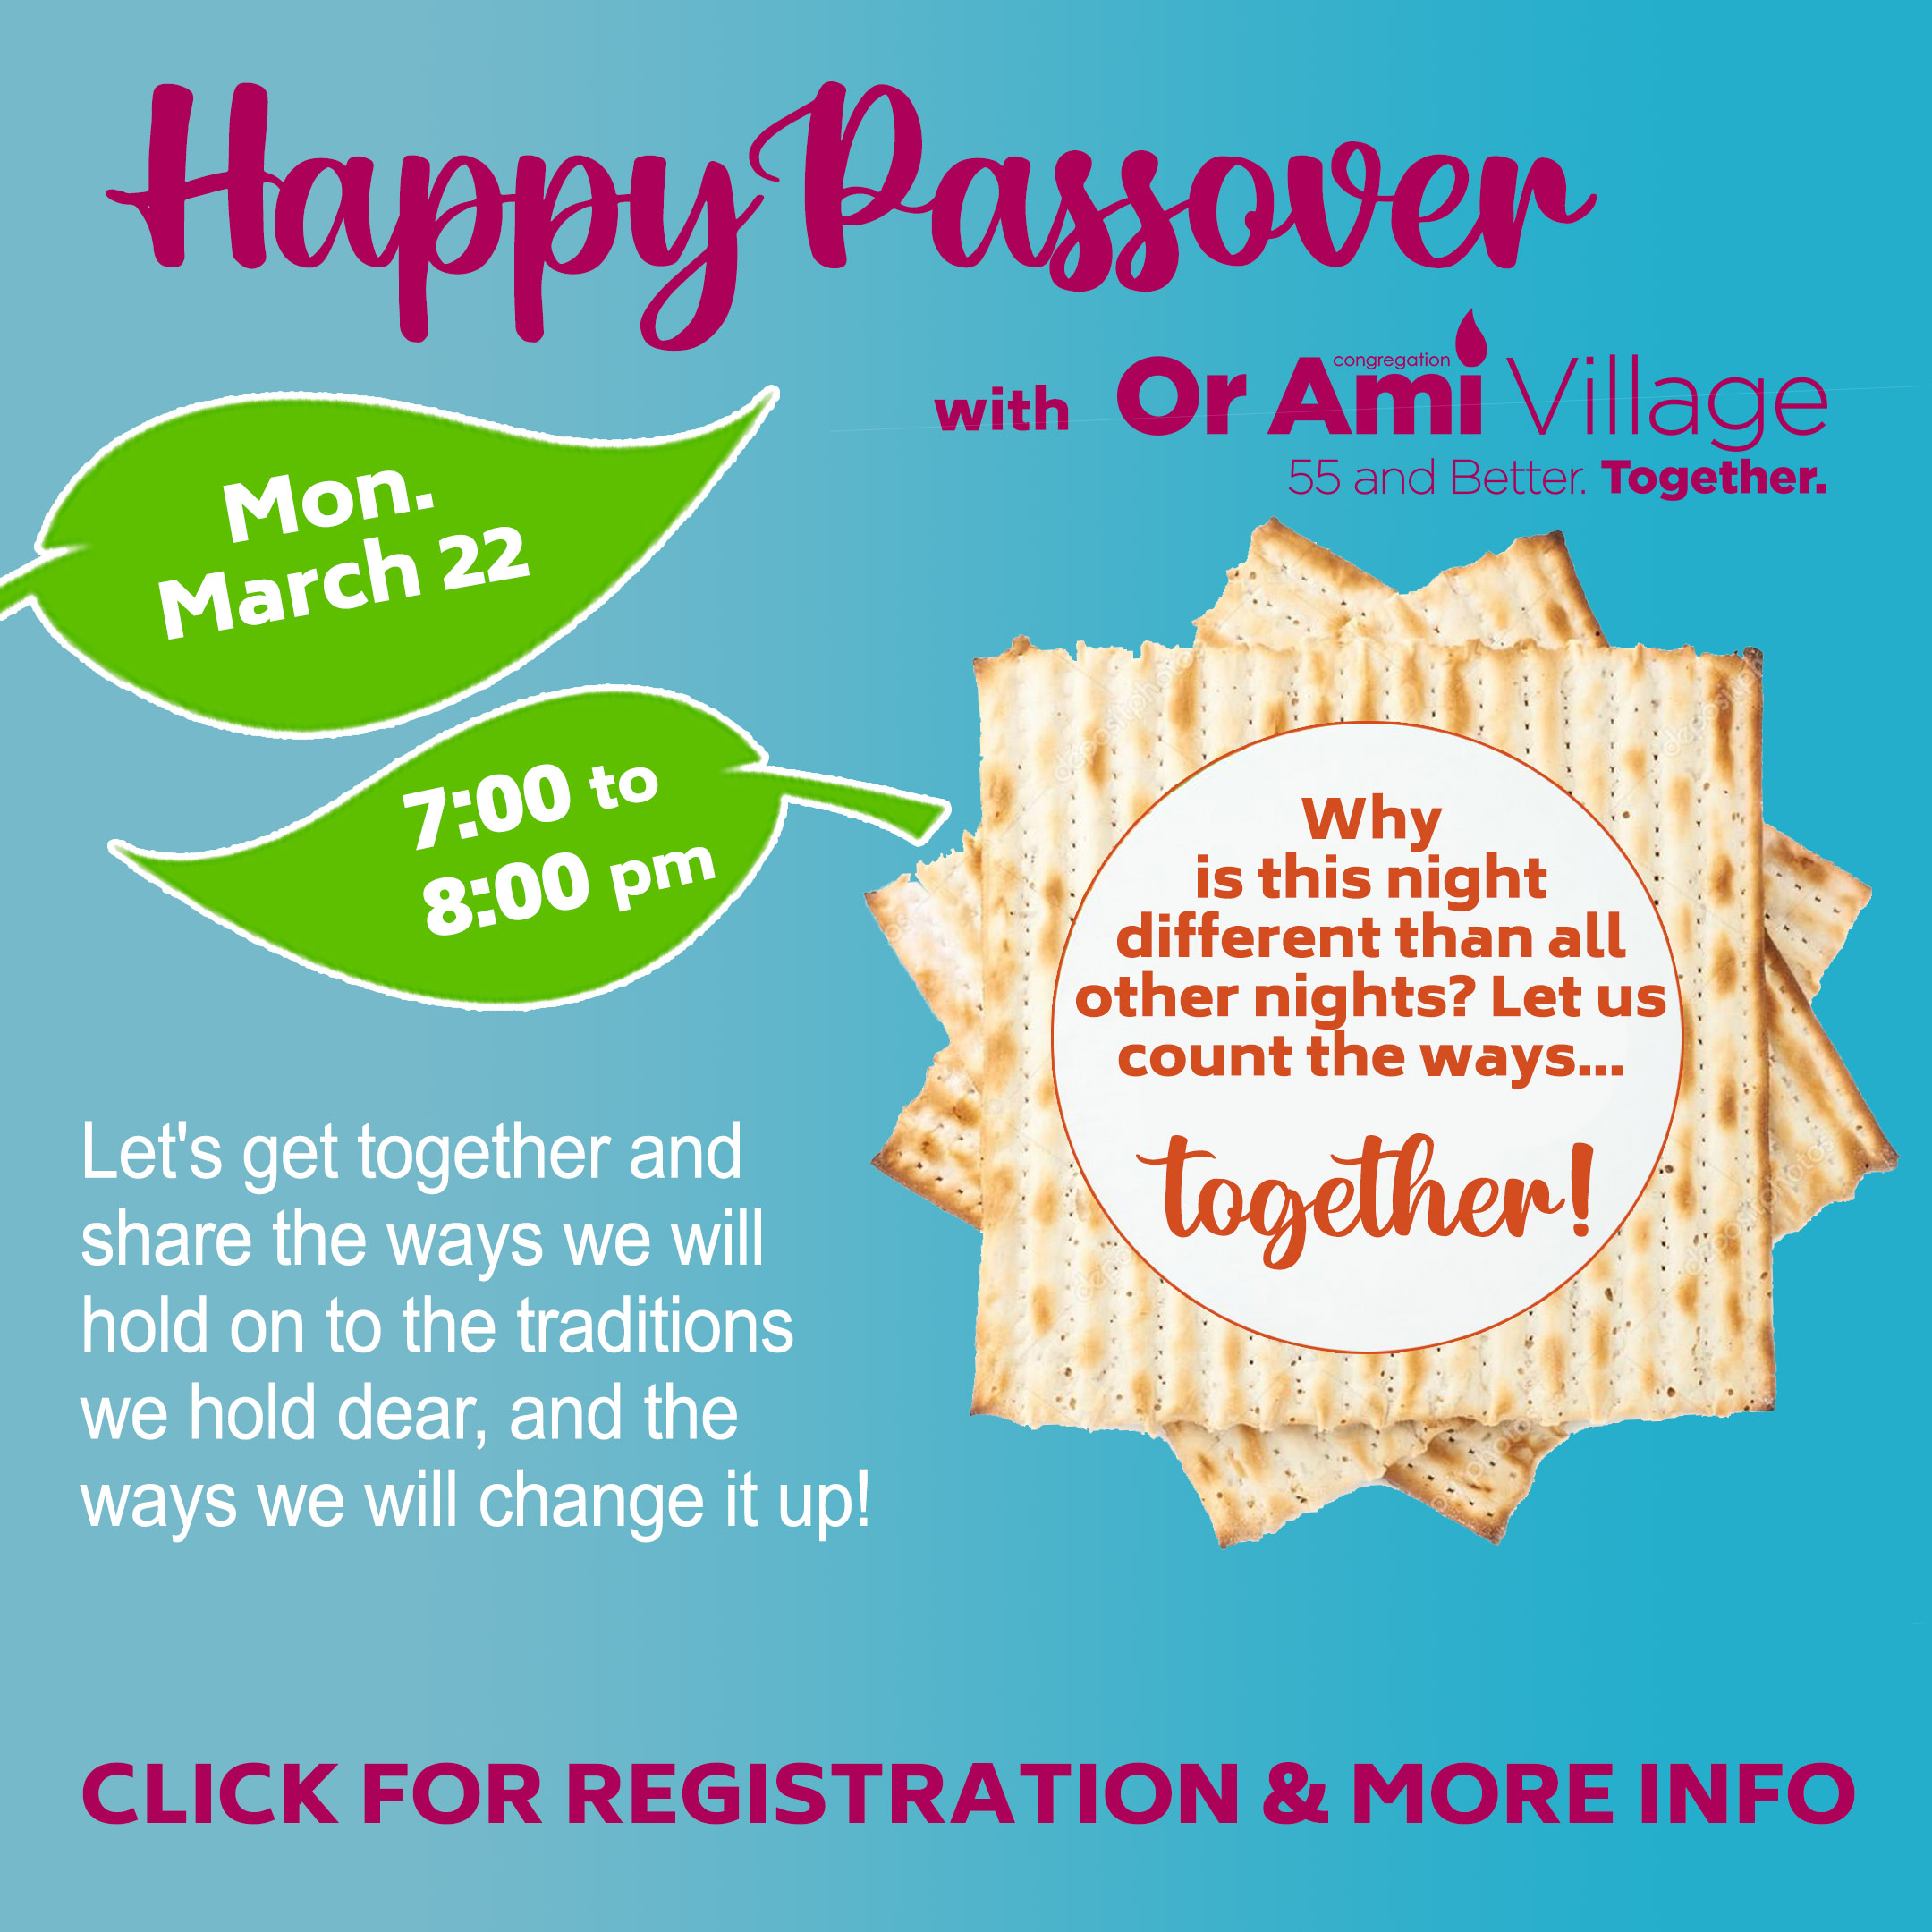 happy passover with or ami village with CLICK